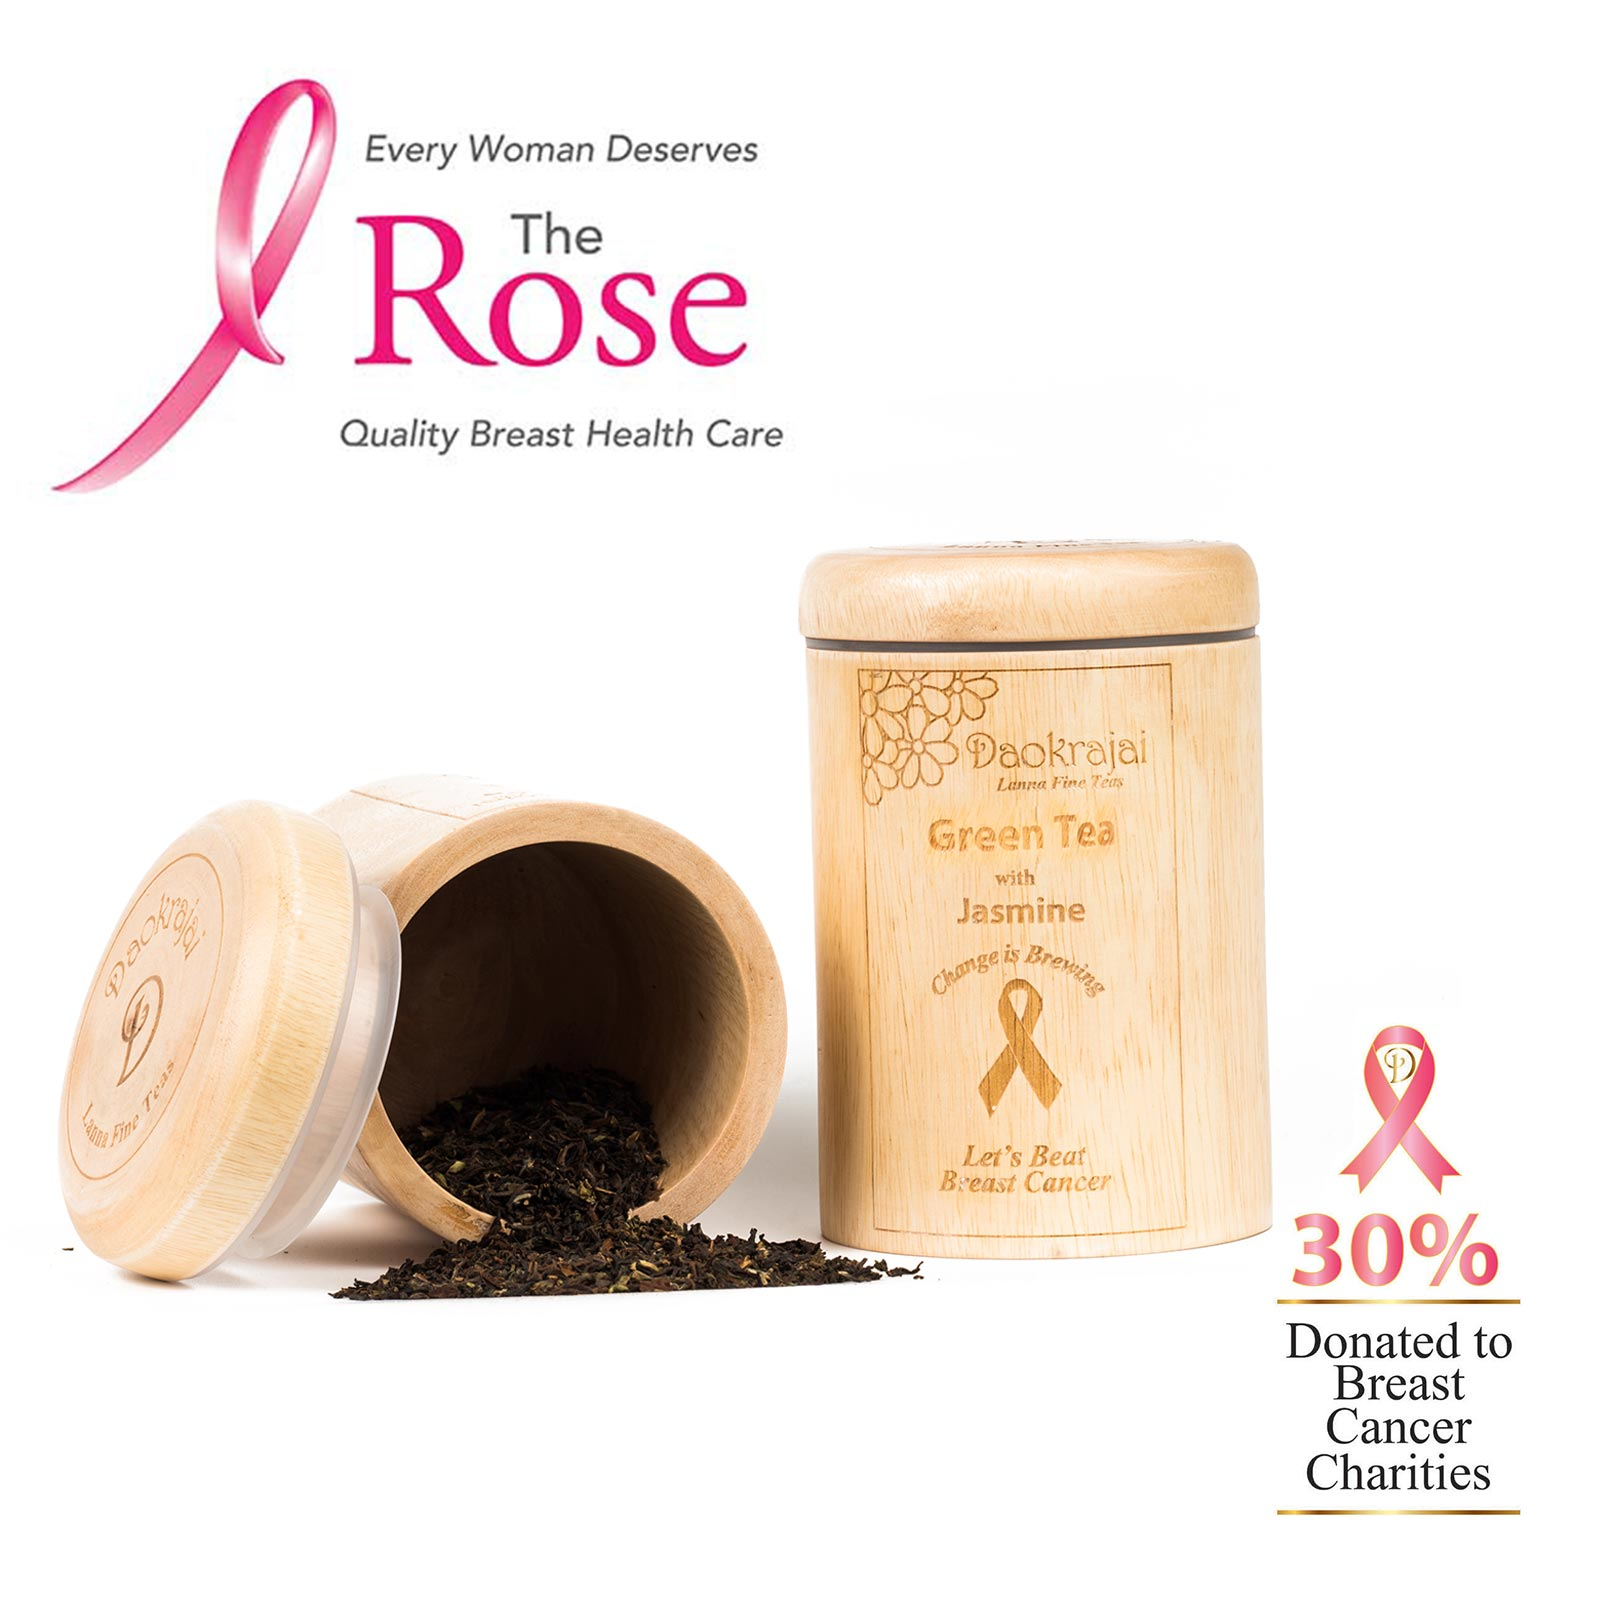 Green Tea with Jasmine Caddy supporting The Rose Breast Cancer Charity